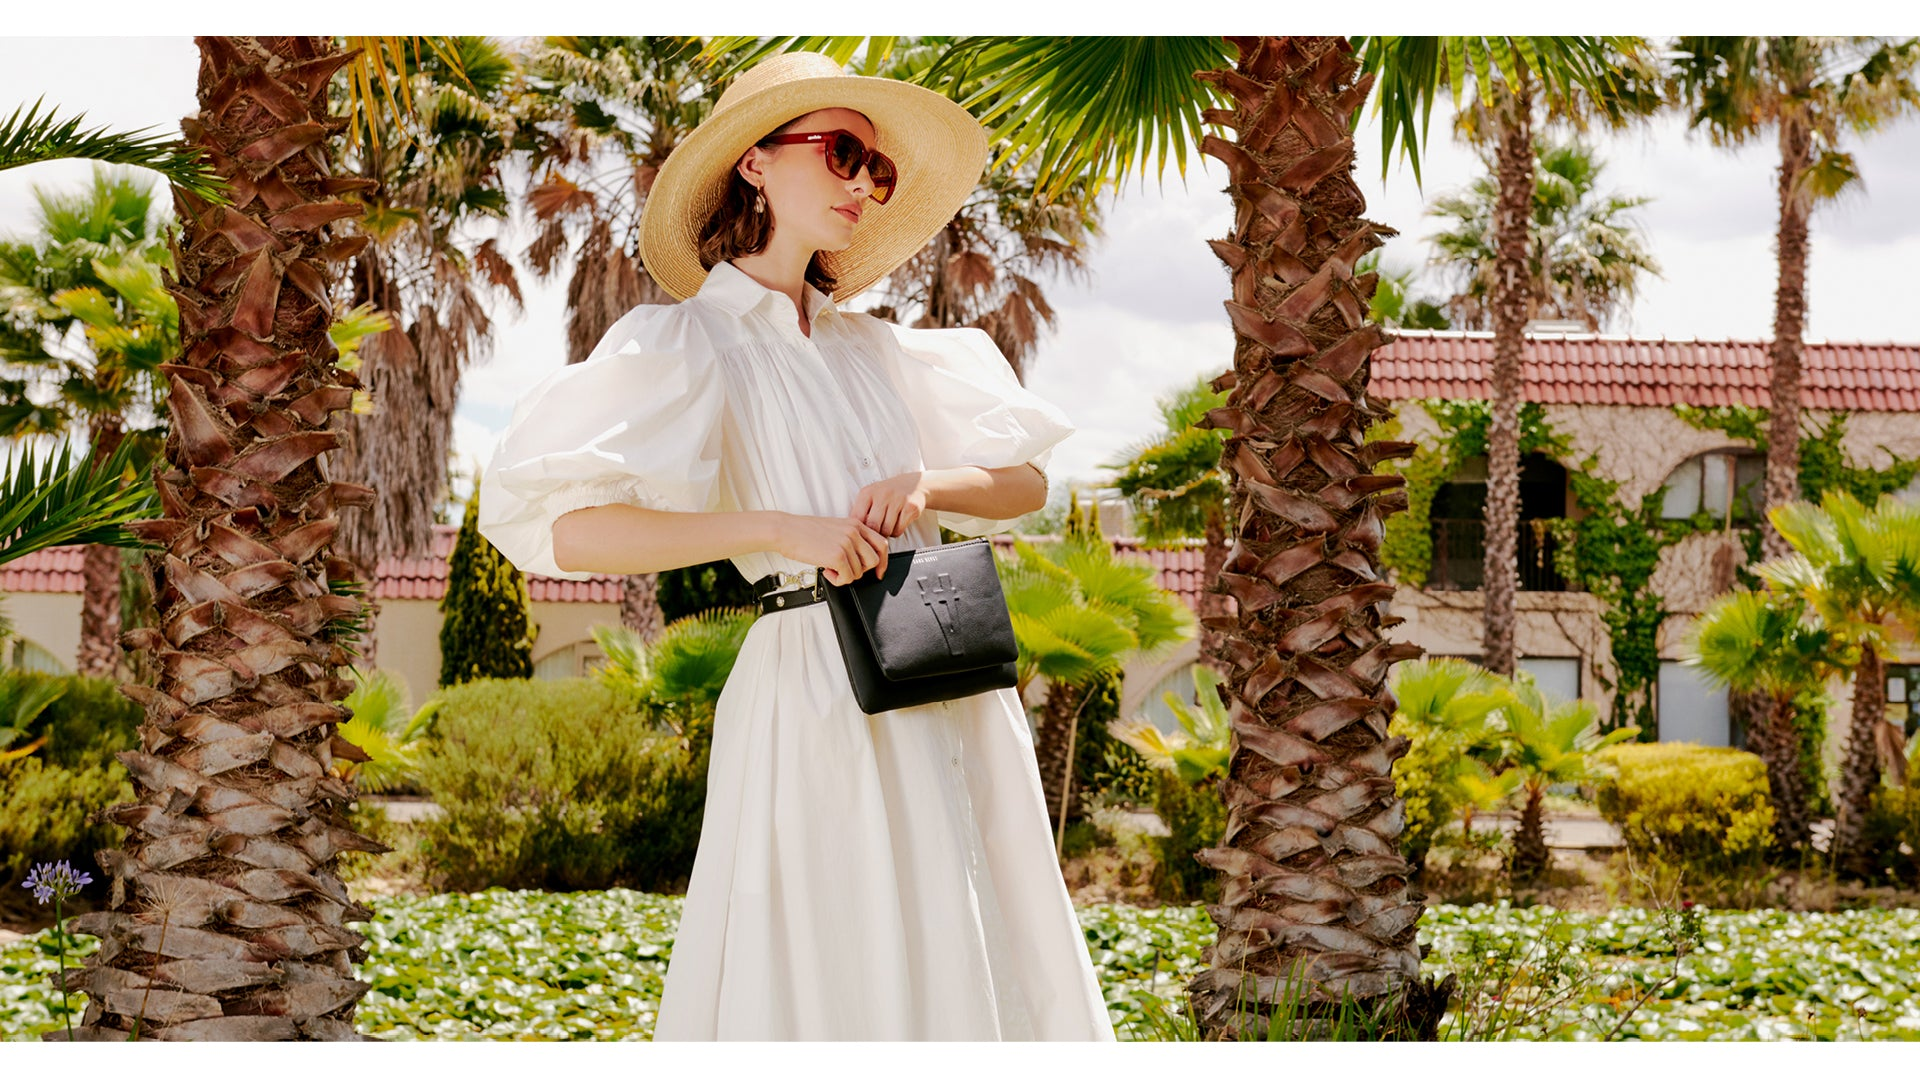 Juliette in a white dress + sun hat, holding The Francisco Double Pouch in Noir Cactus.